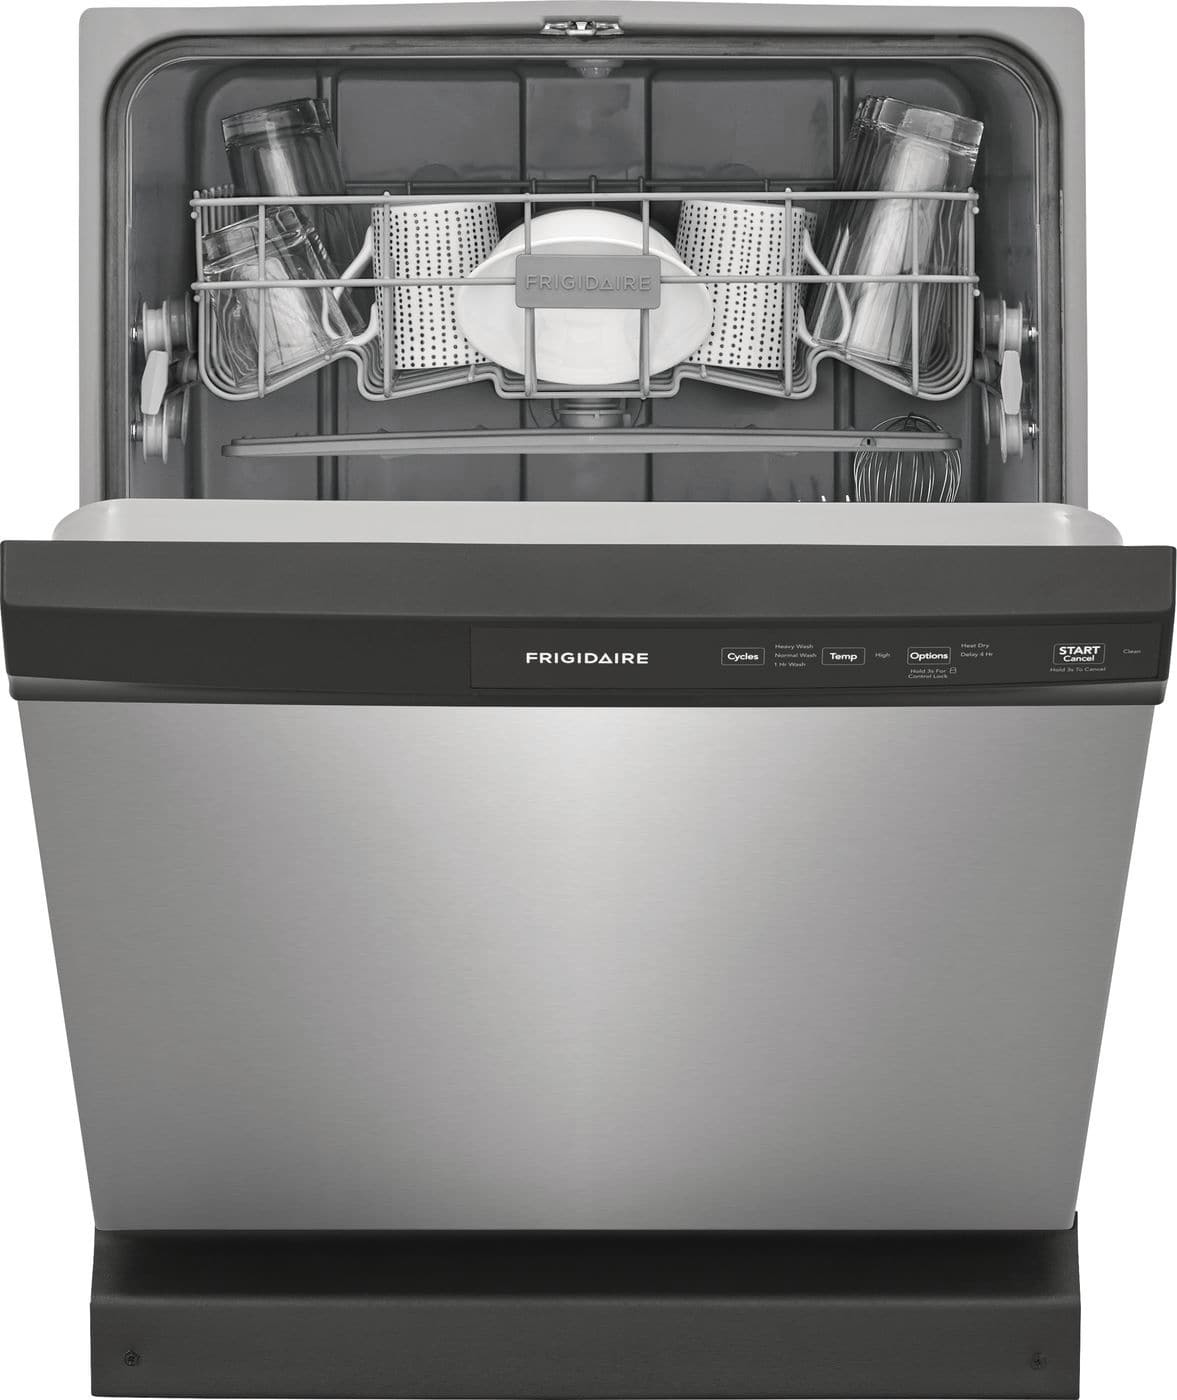 Frigidaire 60-Decibel Built-In Dishwasher (Stainless Steel